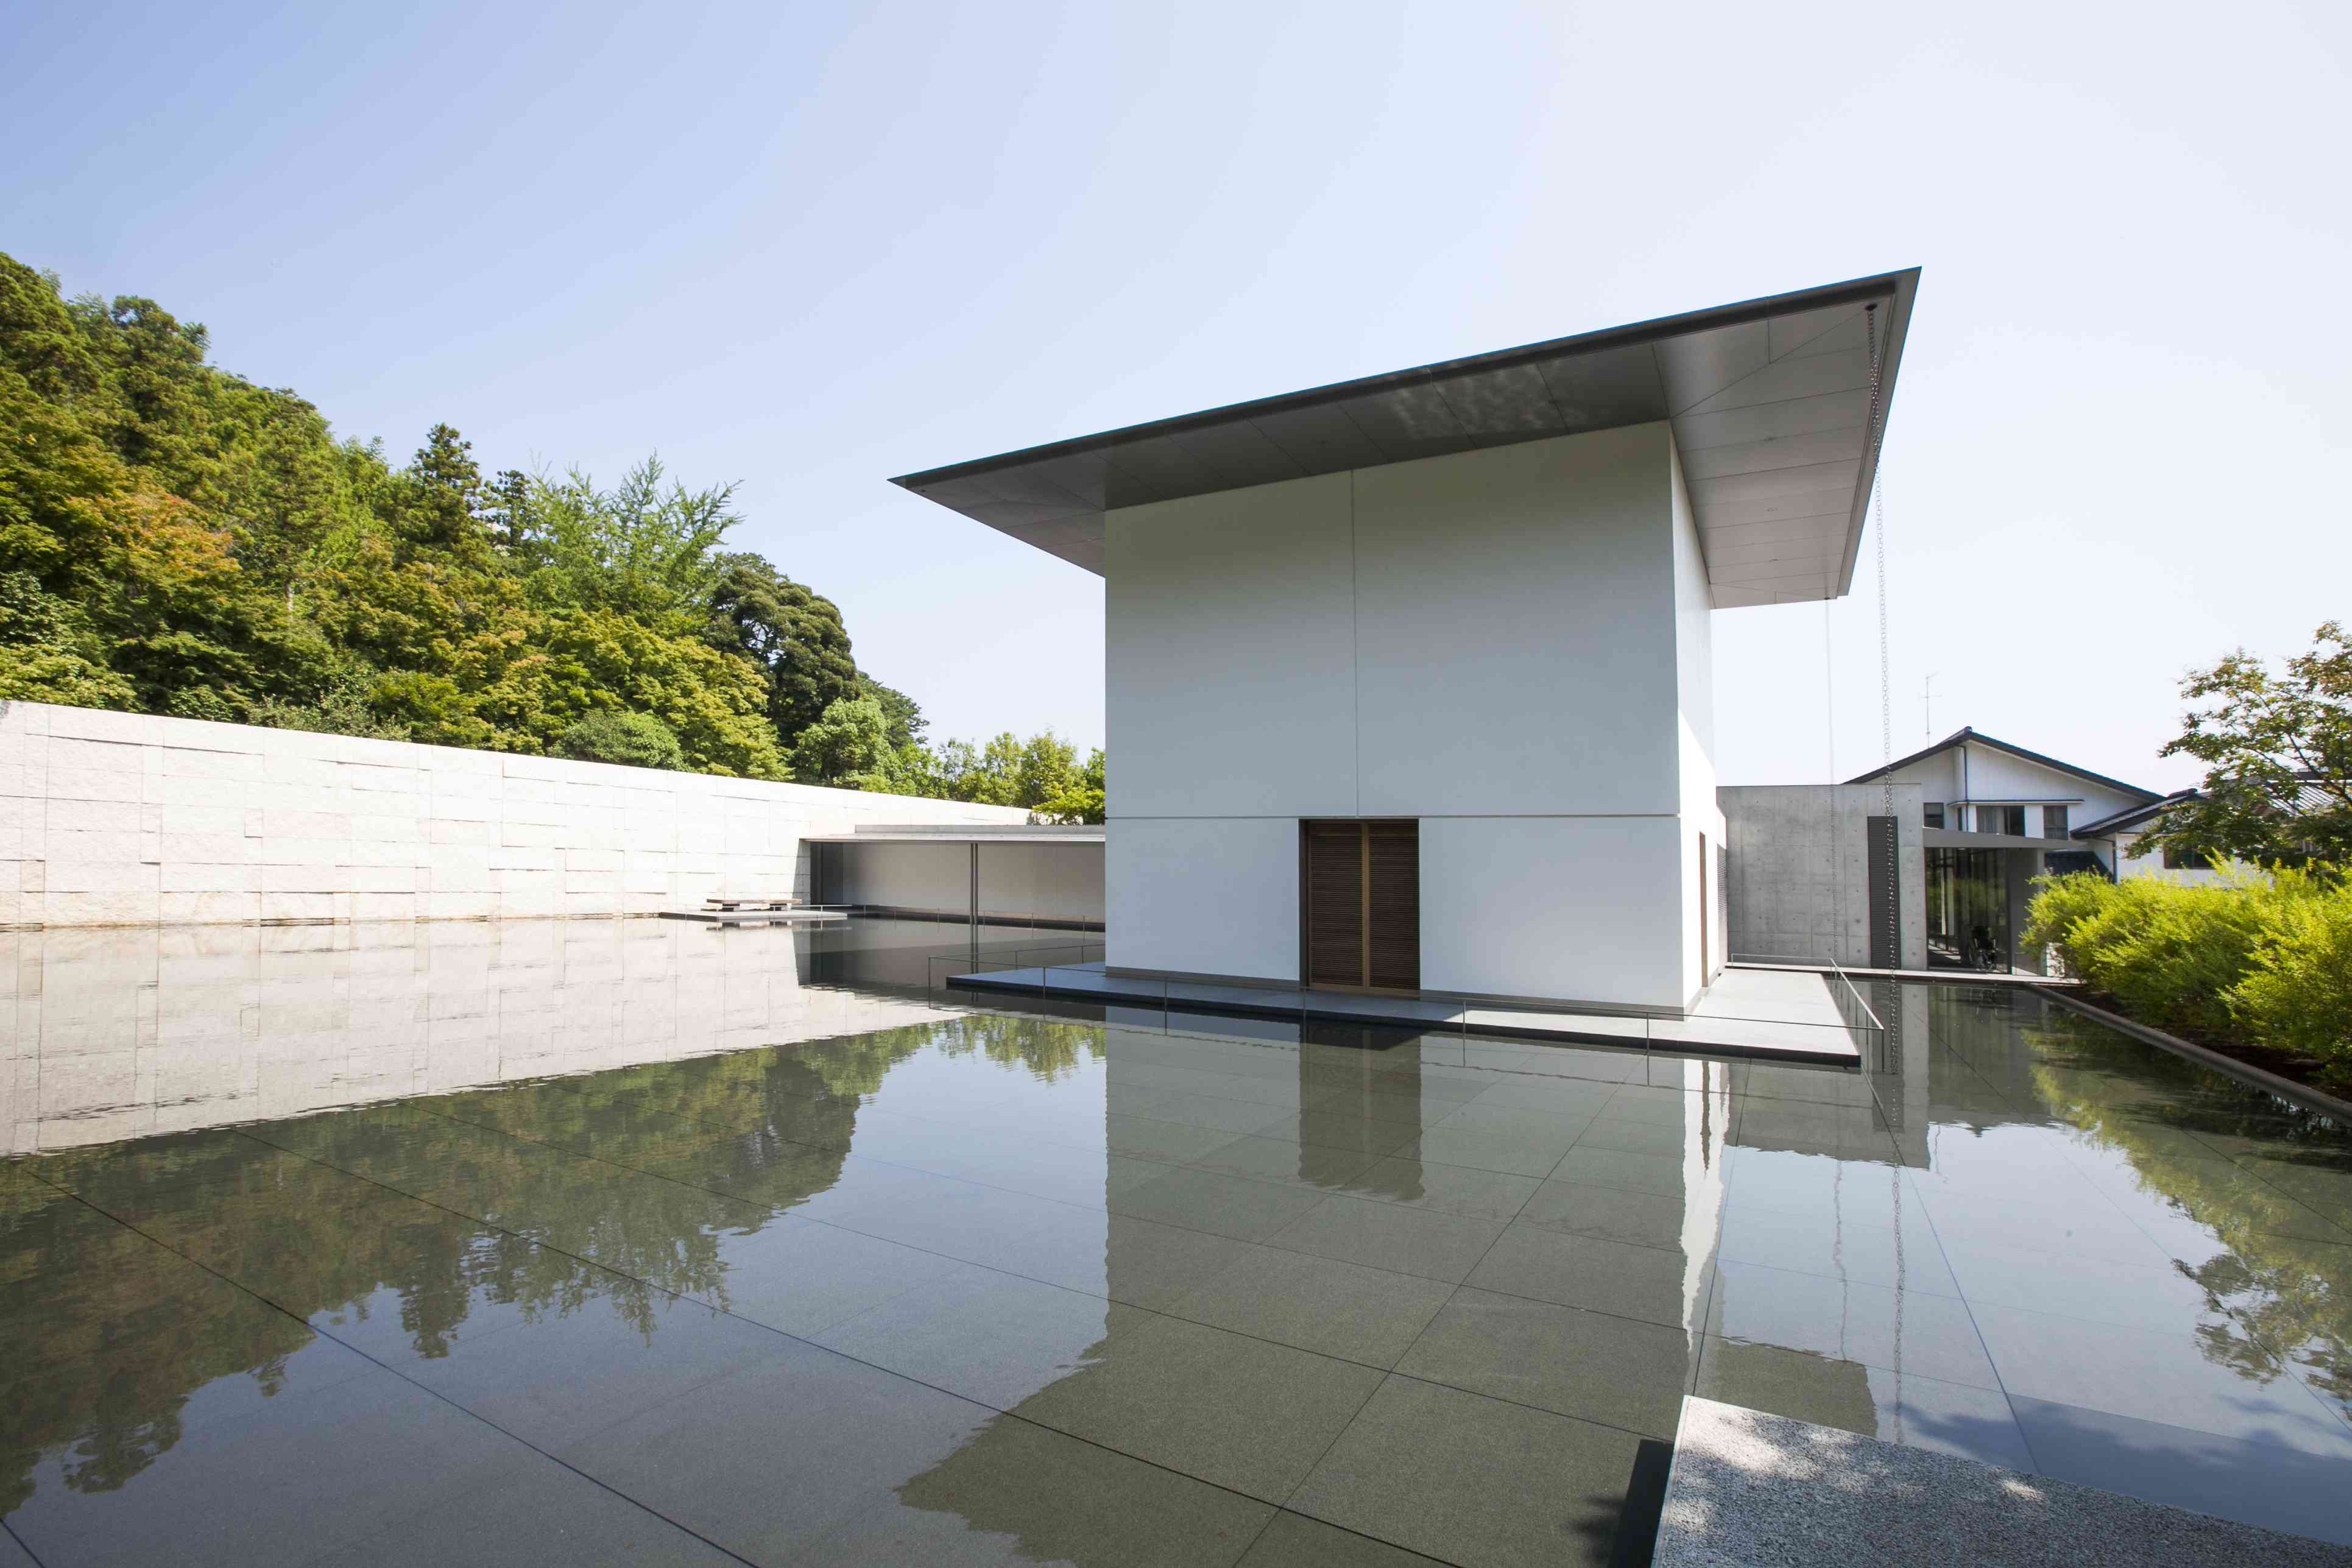 D.T. Suzuki Museum entrance with a reflective pool in front of it